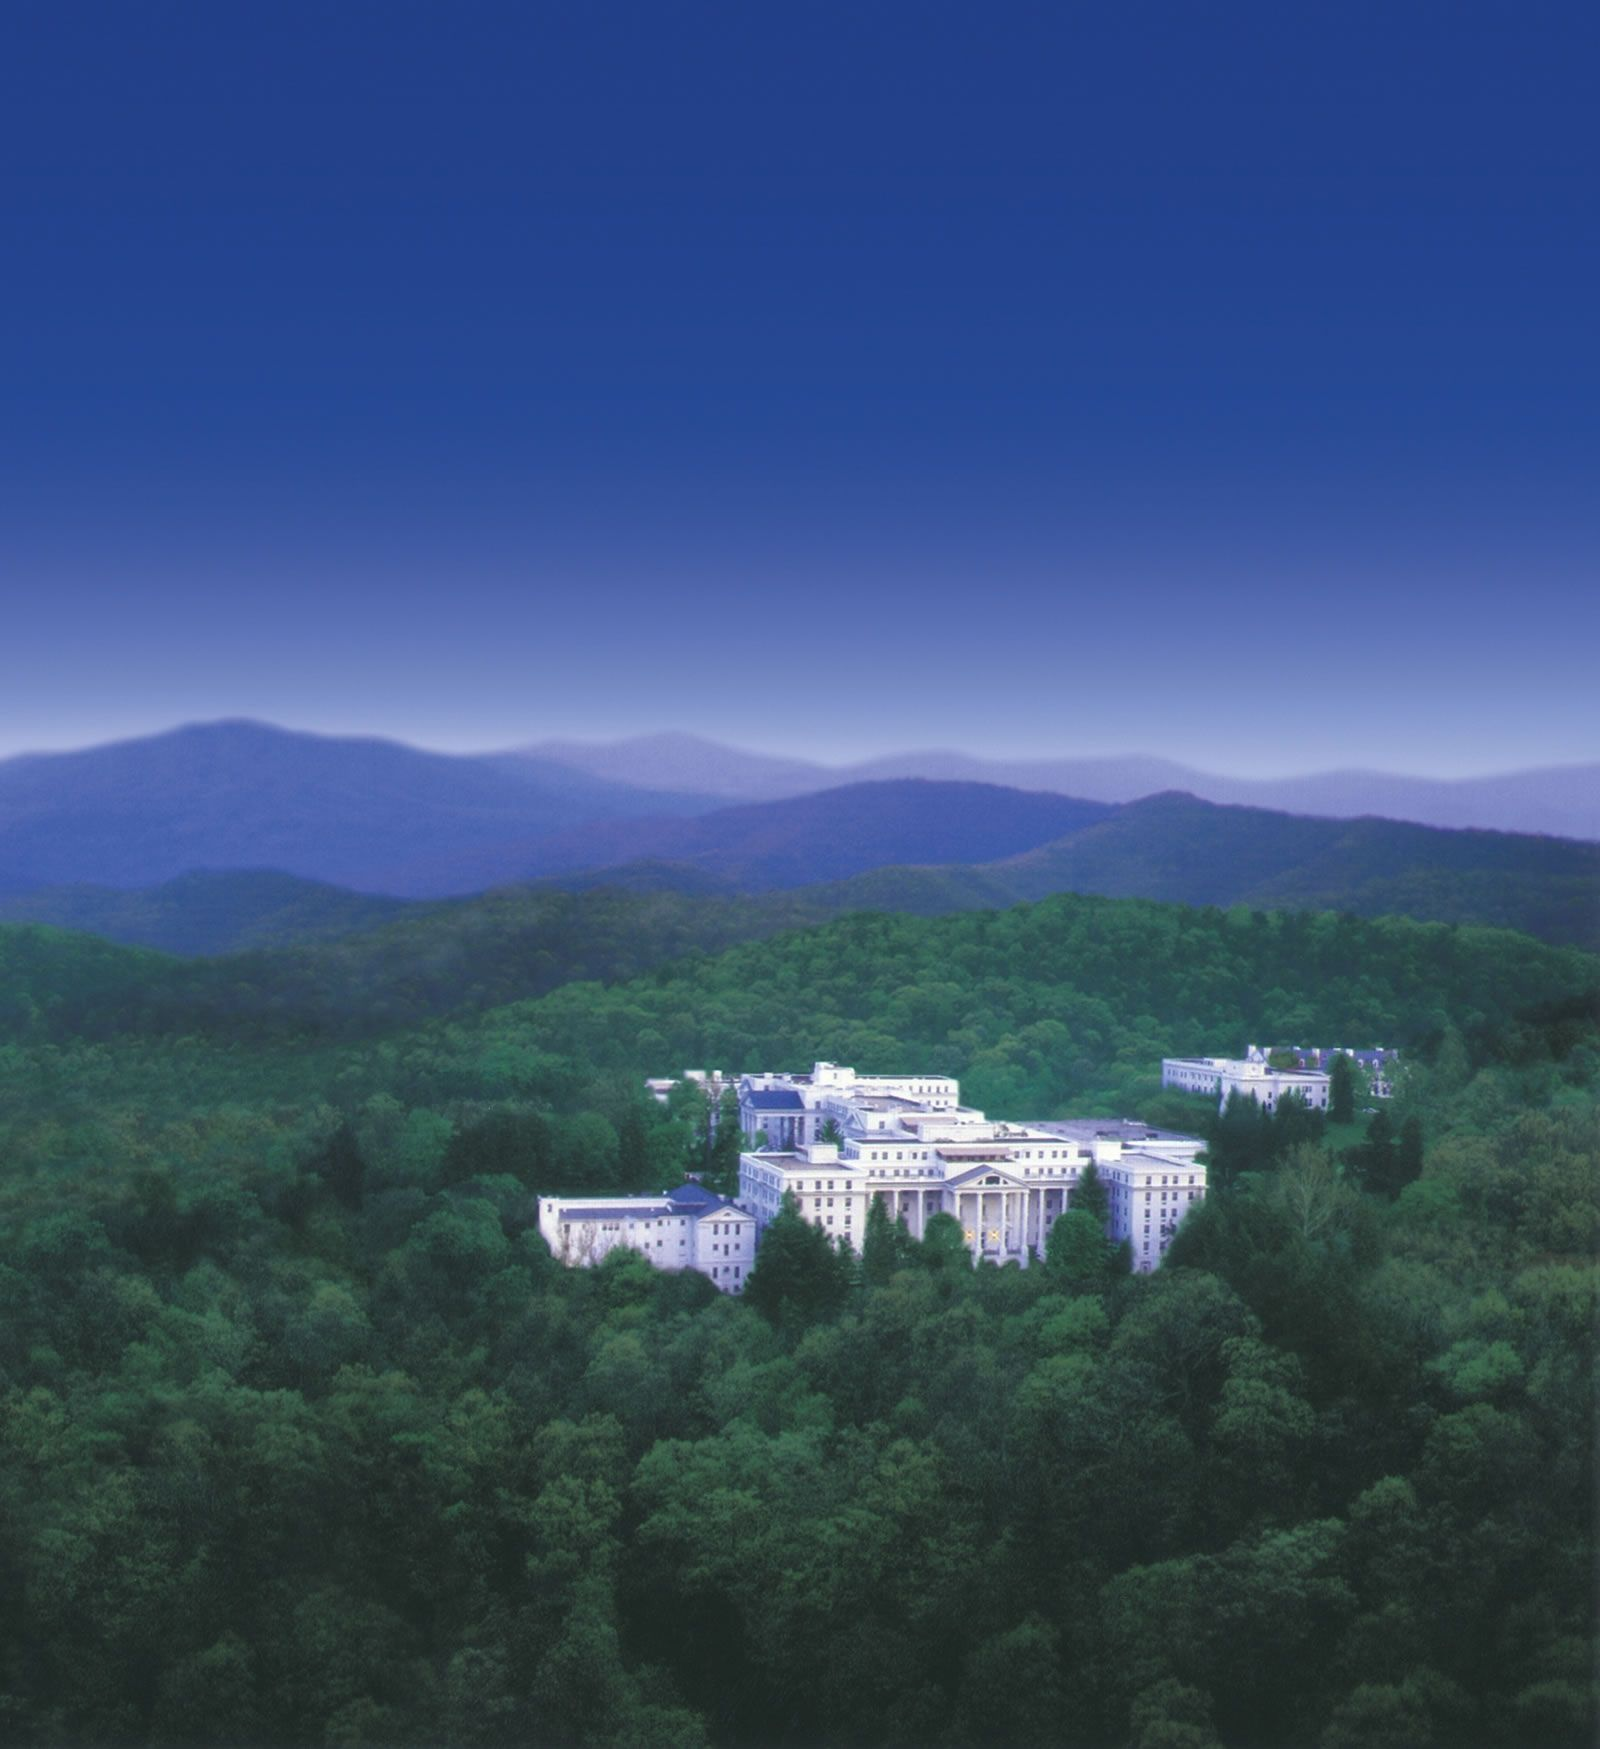 The Greenbrier 3 Golf Courses Spa Deals In West Virginia Greenbrier Resort West Virginia Greenbrier